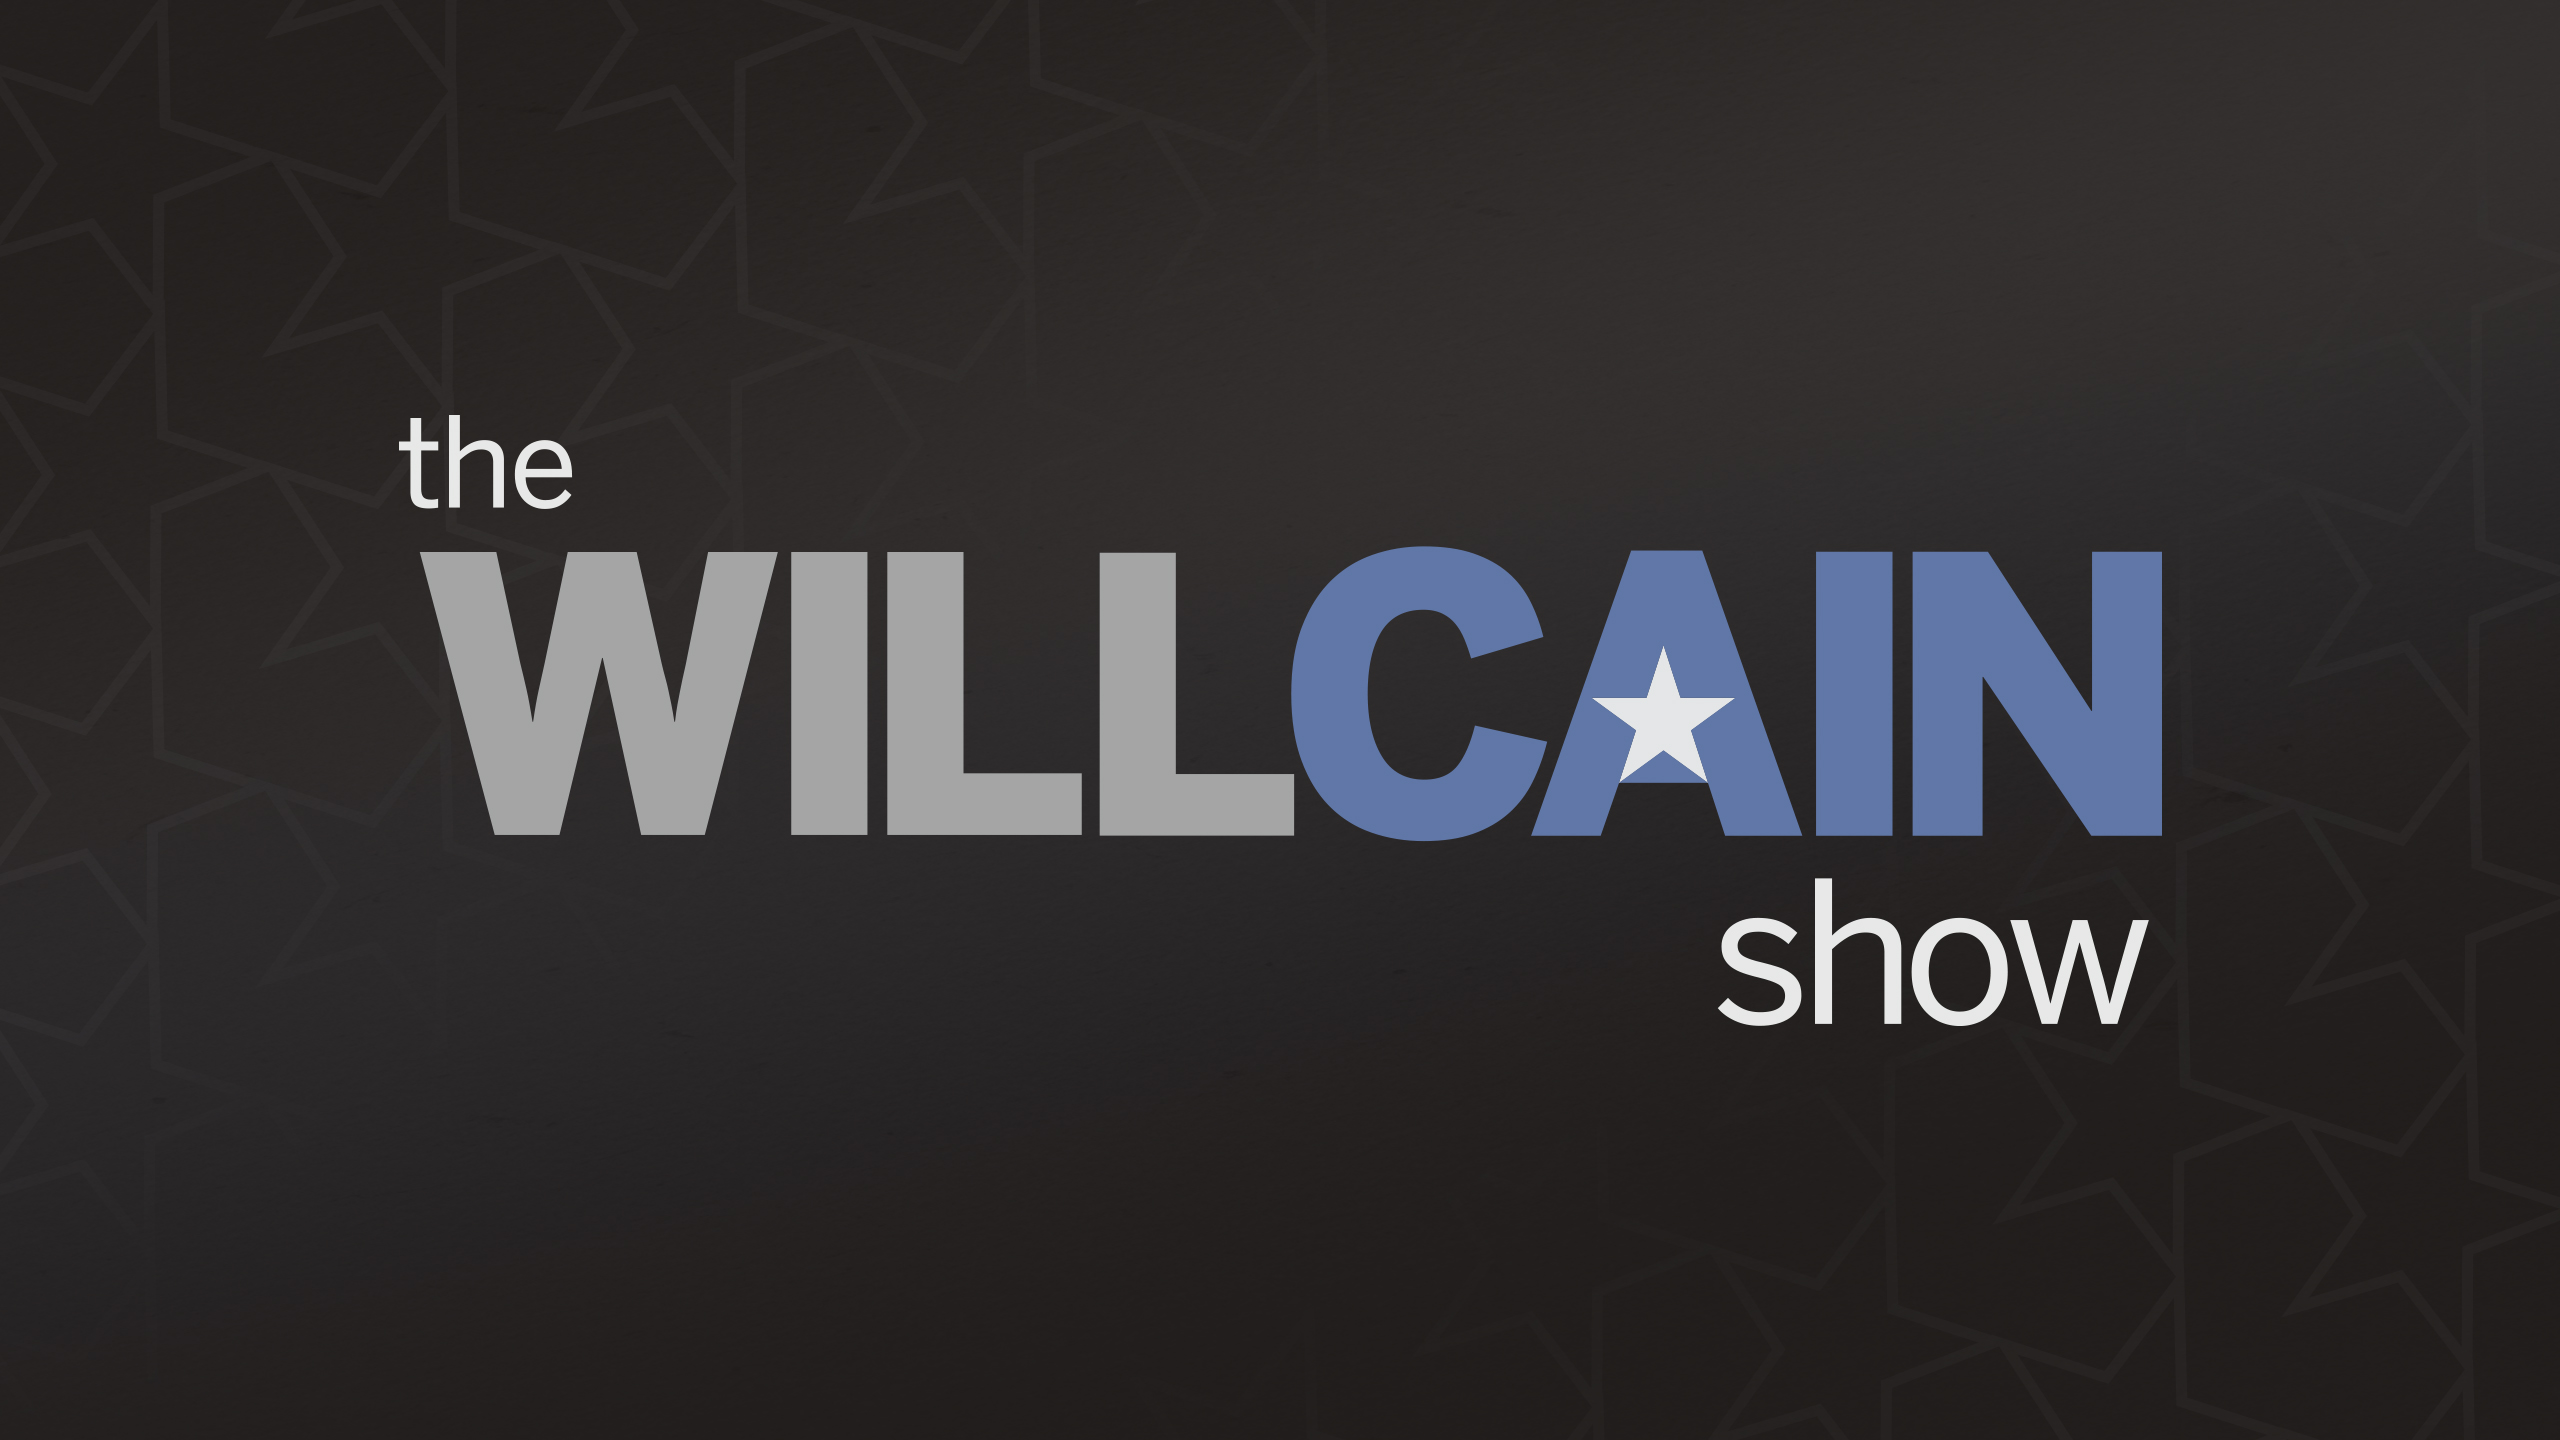 Mon, 12/17 - The Will Cain Show